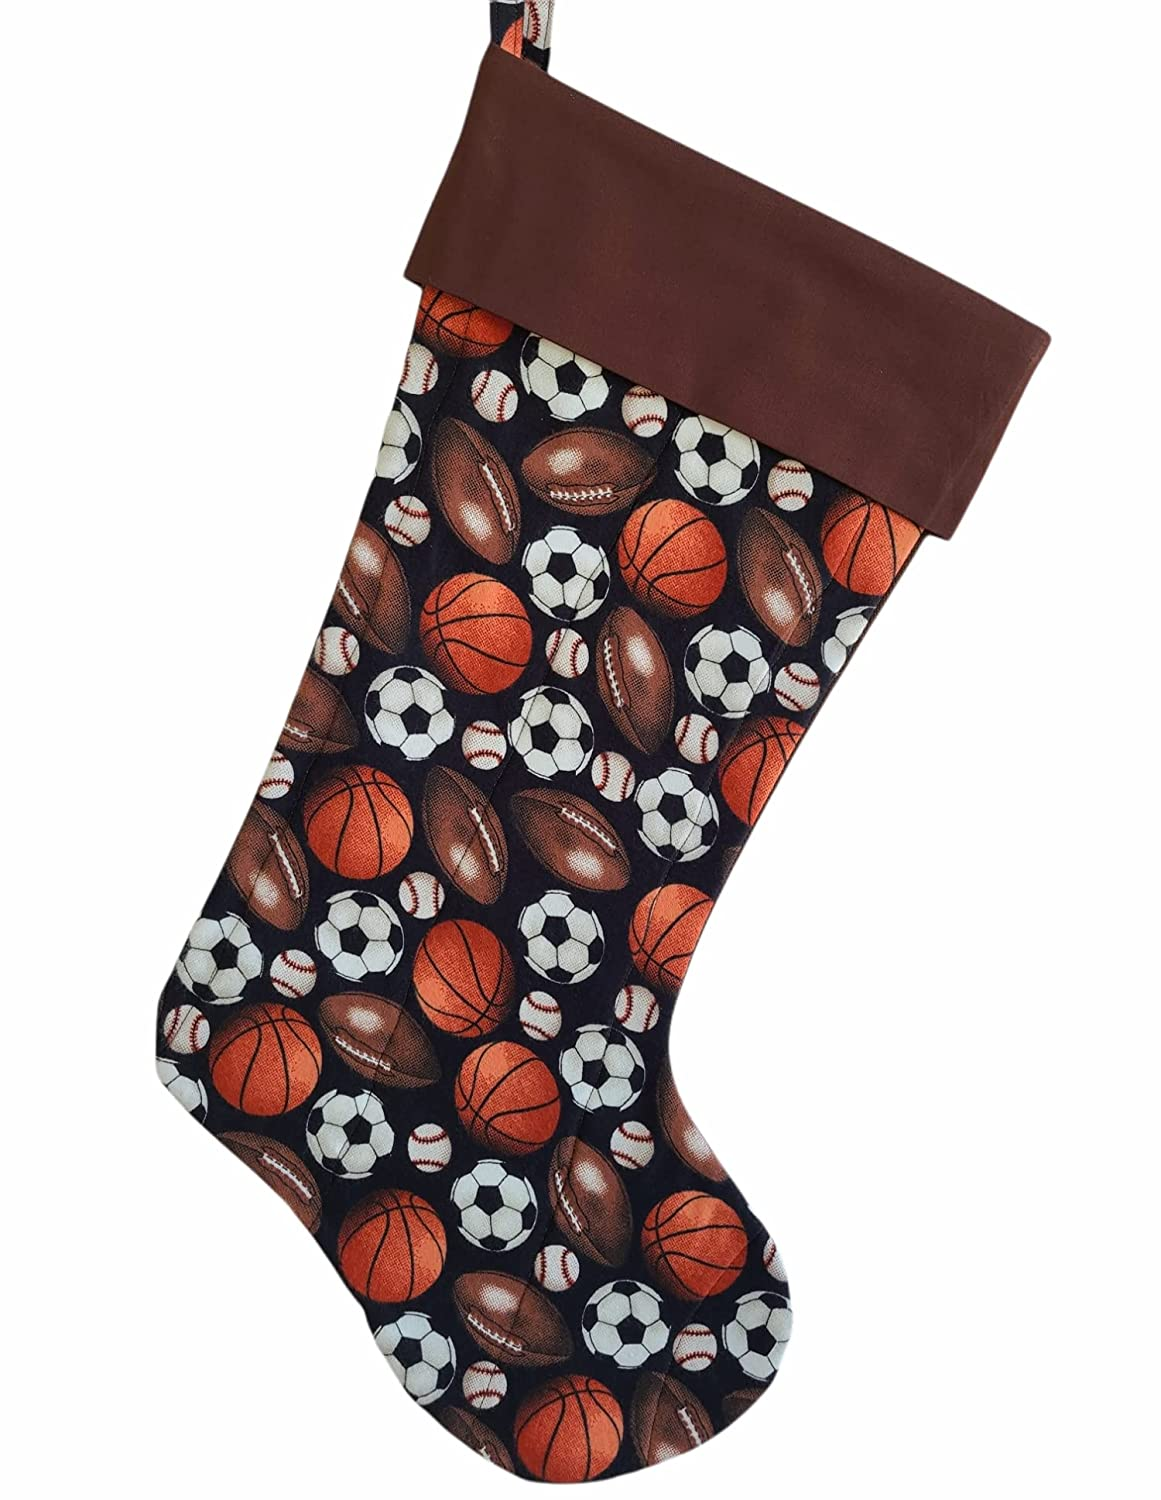 Soccer - Football Basketball Christmas Stoc Our shop Super Special SALE held OFFers the best service Baseball Quilted